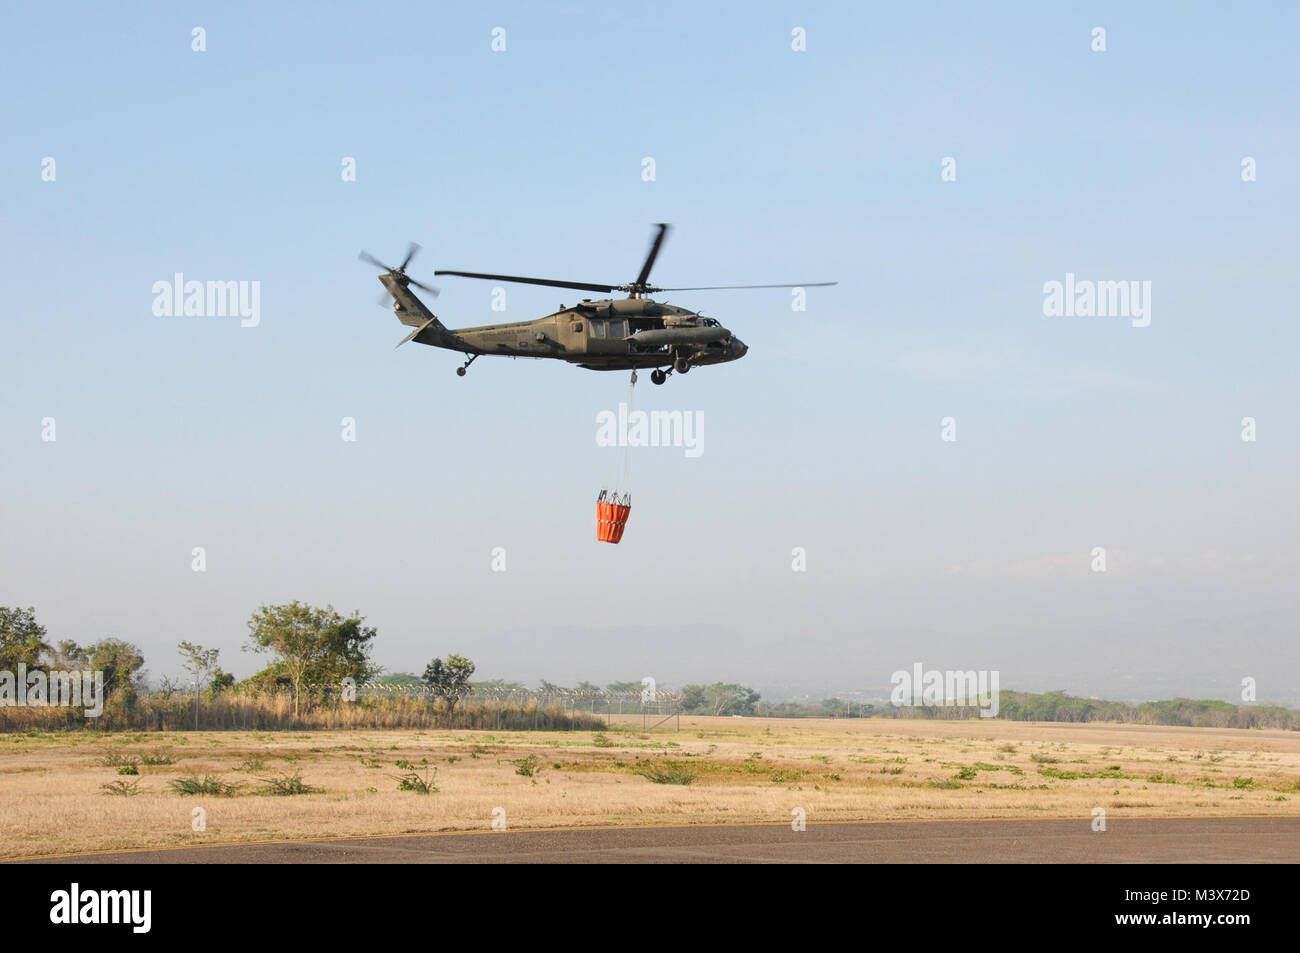 A U. S. Army UH-60 Blackhawk helicopter from the 1-228th Aviation Regiment takes off from Soto Cano Air Base, Honduras Stock Photo